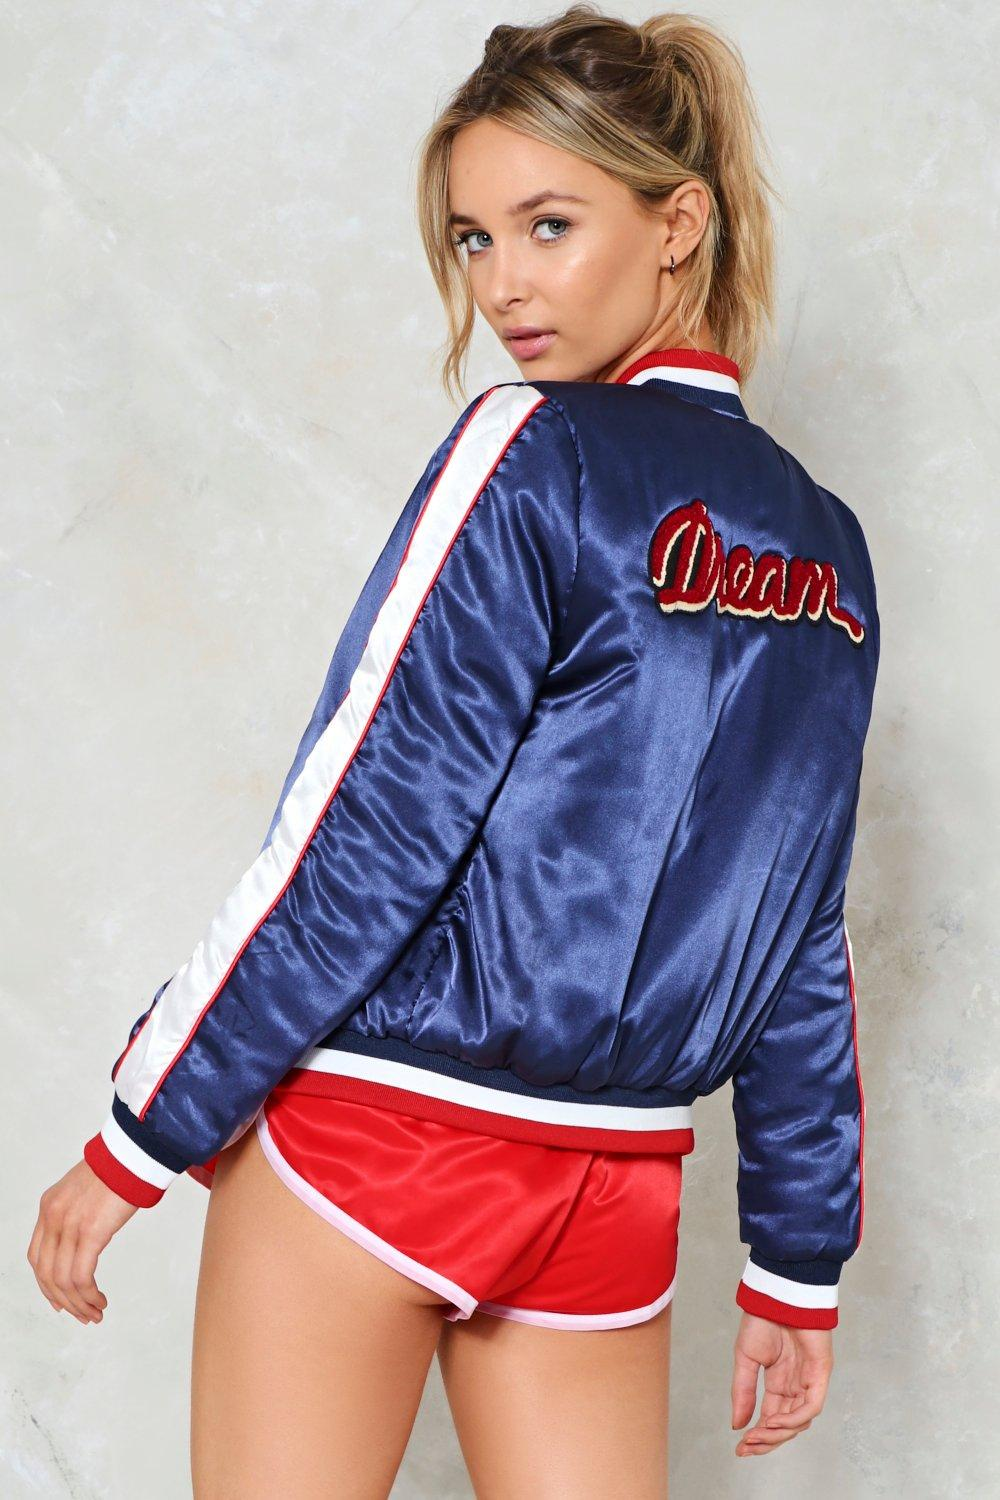 Pleasant Dreams Satin Baseball Jacket